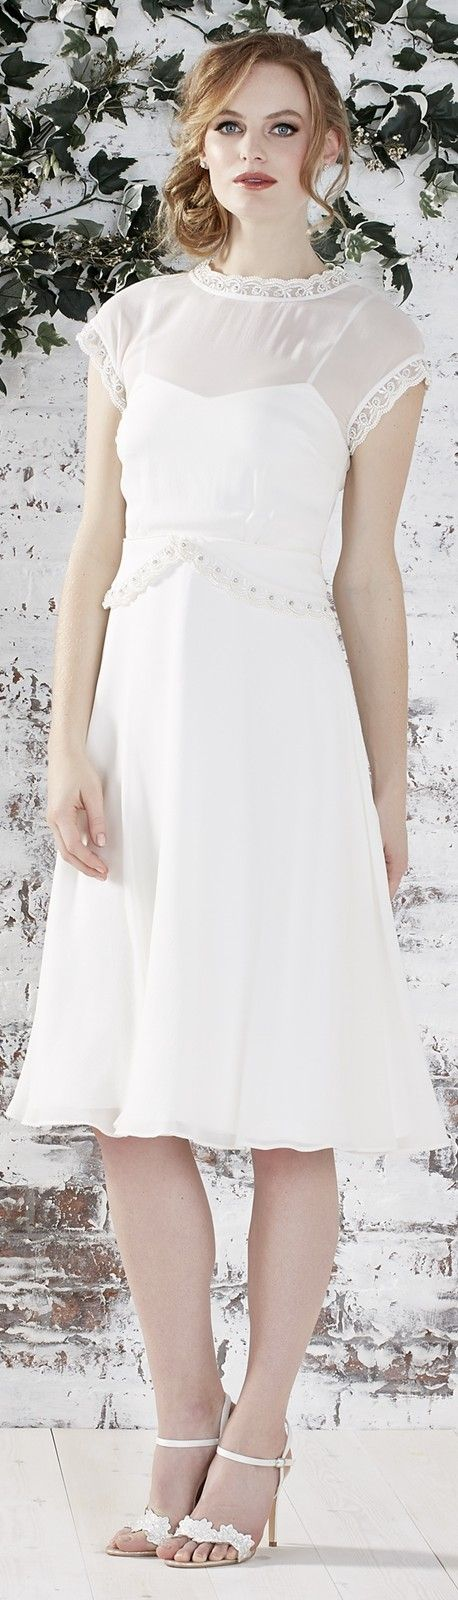 A short or tealength wedding dress is always perfect for